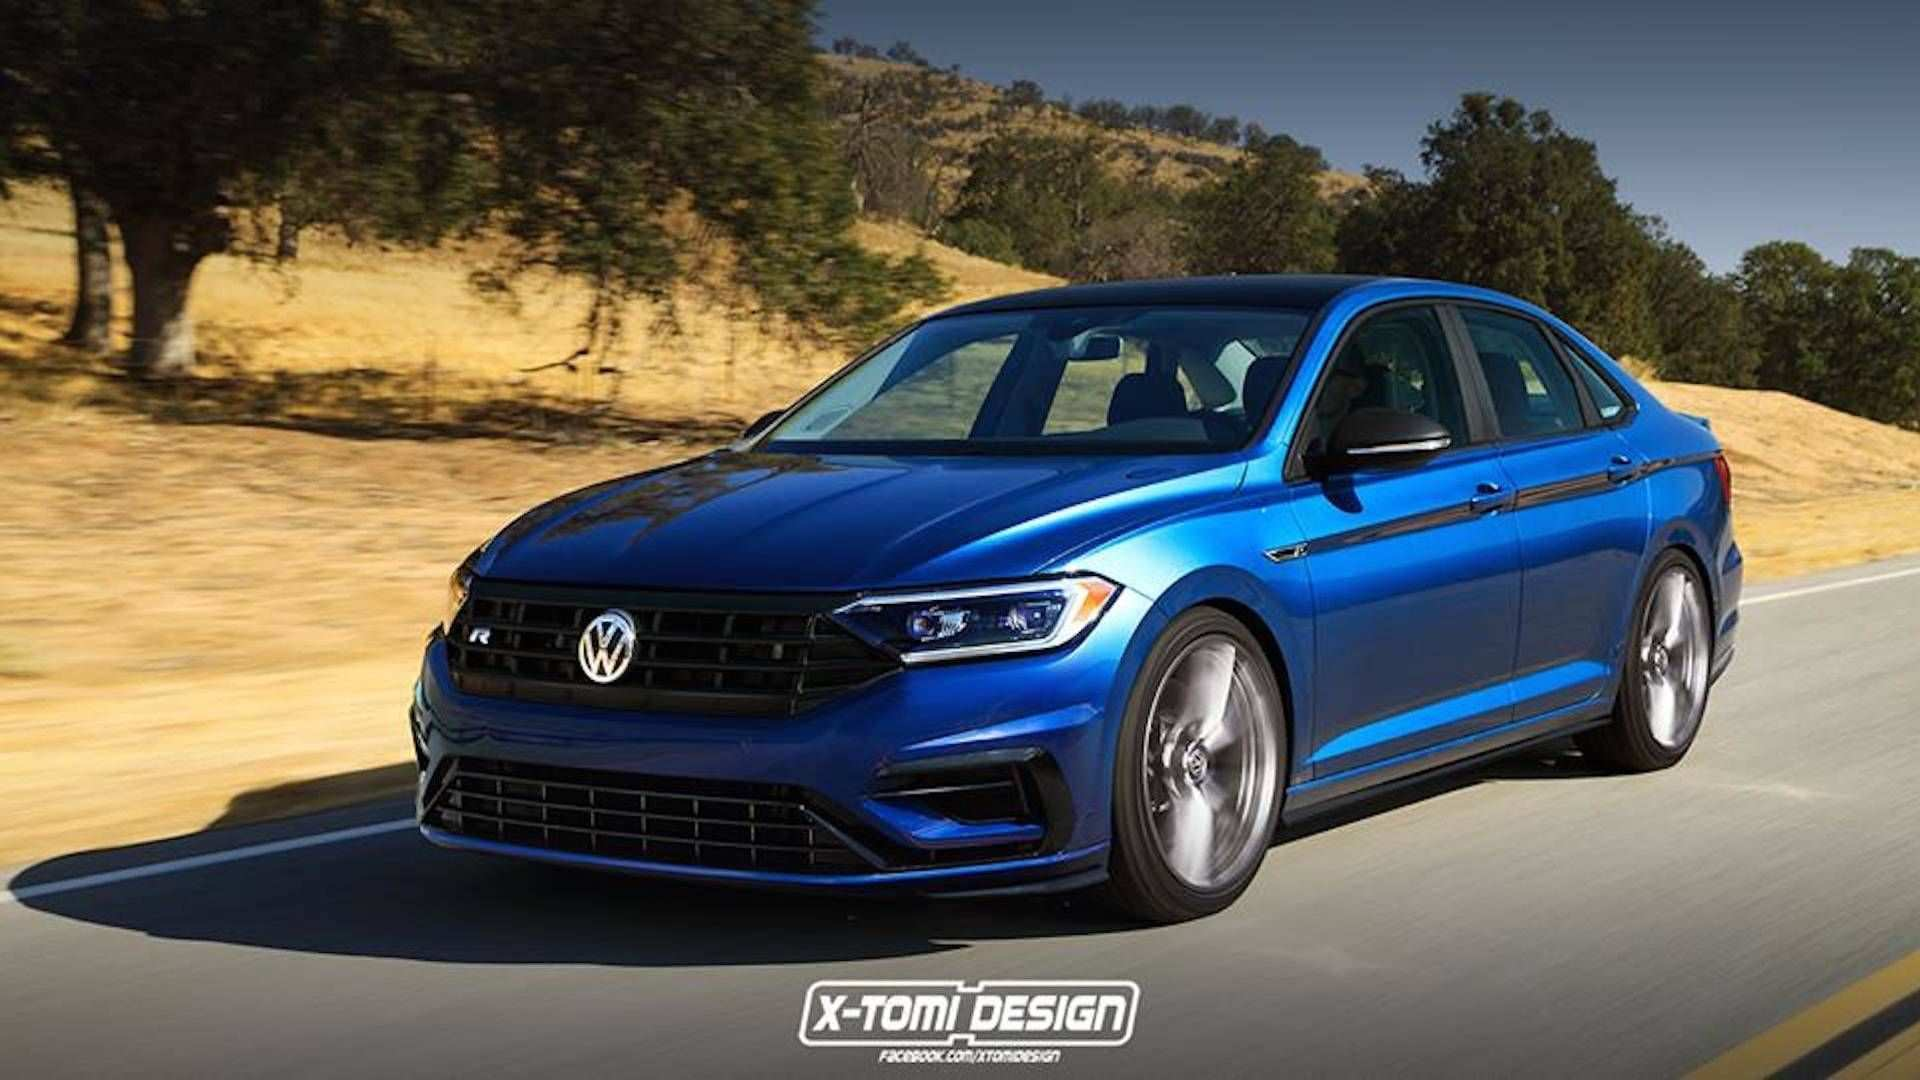 79 The Best Volkswagen Lineup 2019 Review And Release Date Research New for Best Volkswagen Lineup 2019 Review And Release Date